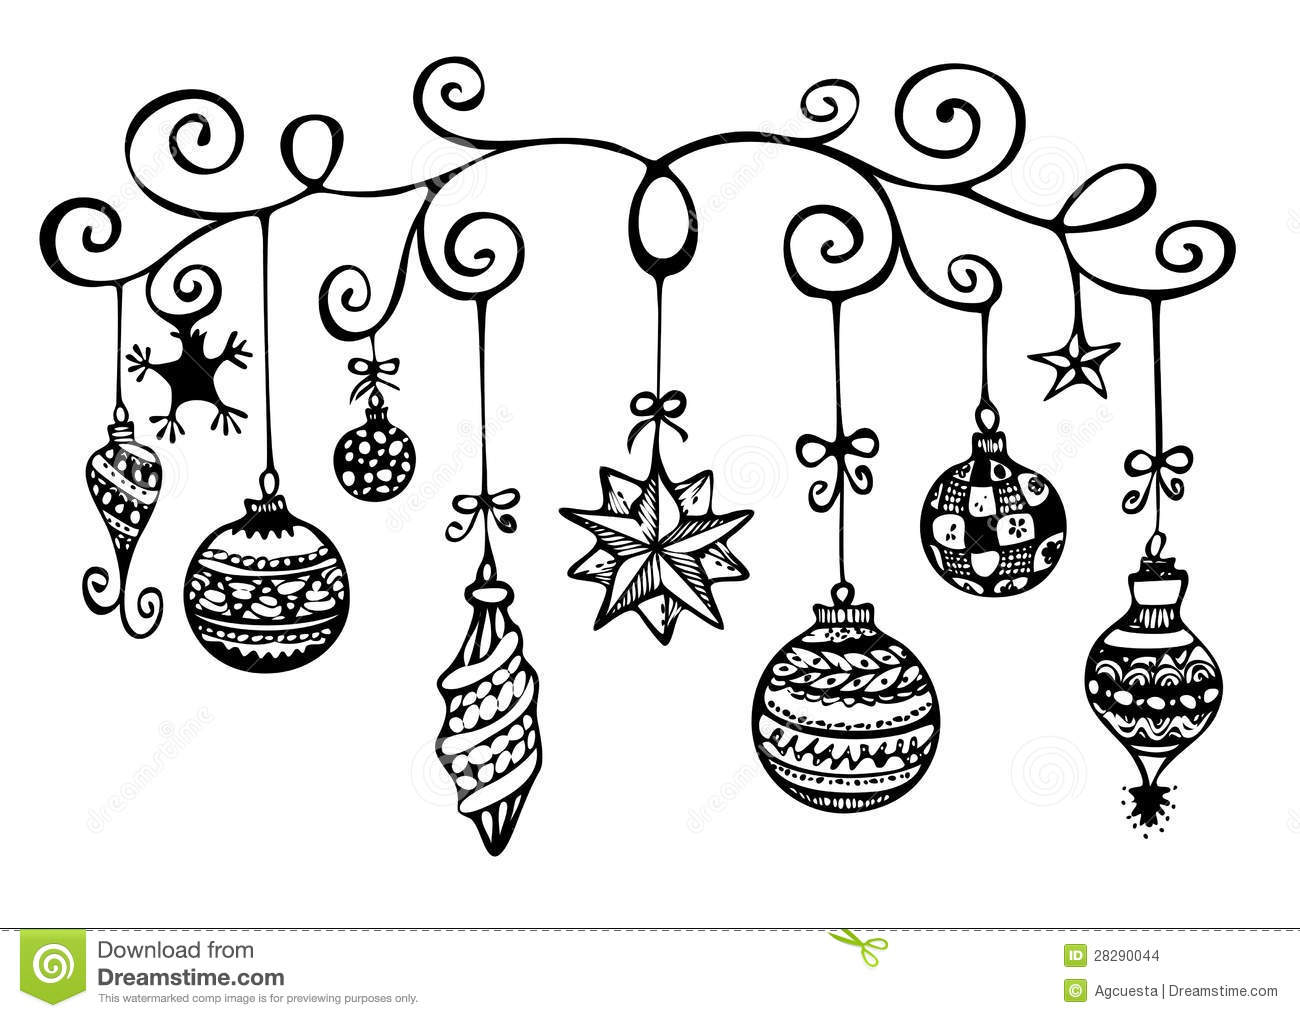 Christmas ornaments clipart black and white 3 » Clipart Station.